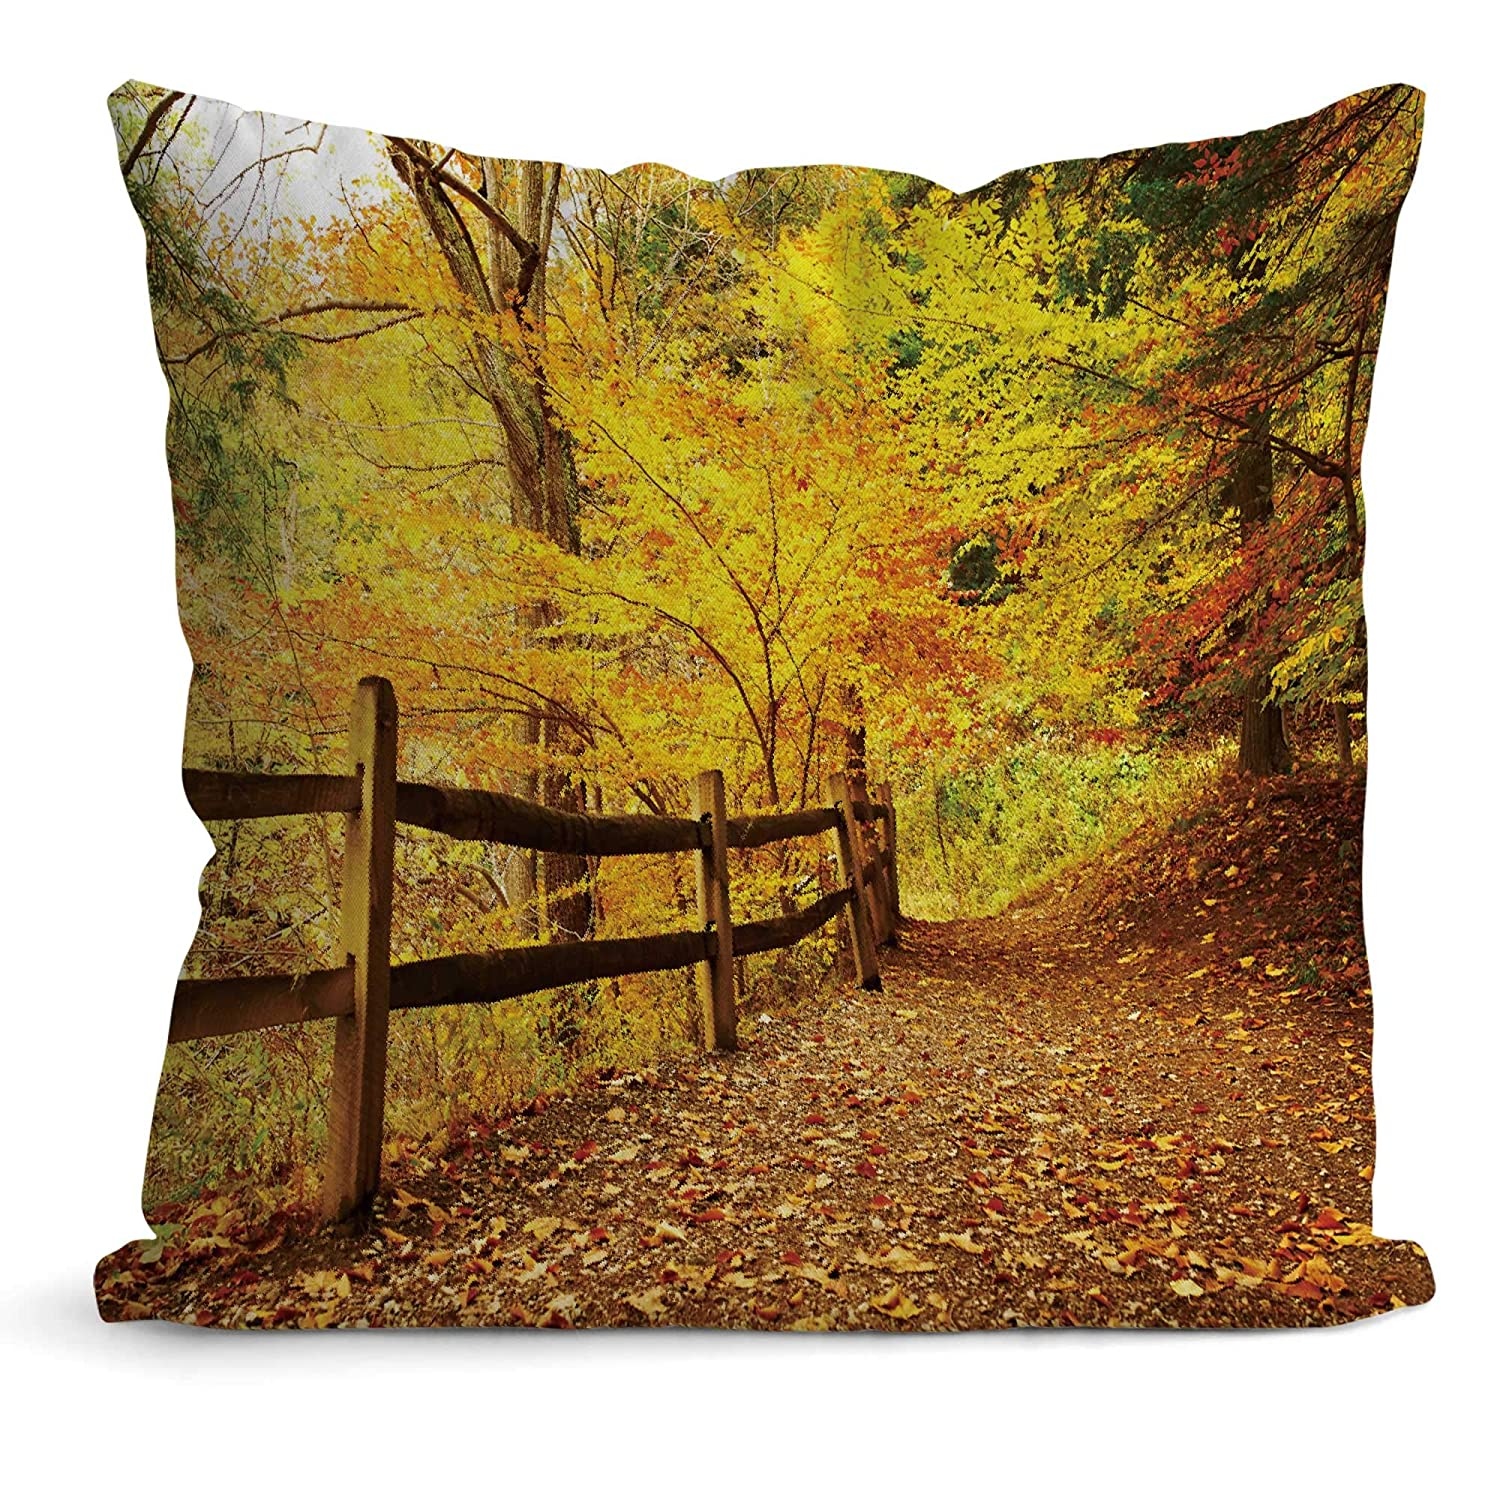 Buy Nine City Autumn Scene Landscape At Letchworth State Park Pillow Case Cushion Couch Cover Pillow Covers 12 X 12 Online At Low Prices In India Amazon In